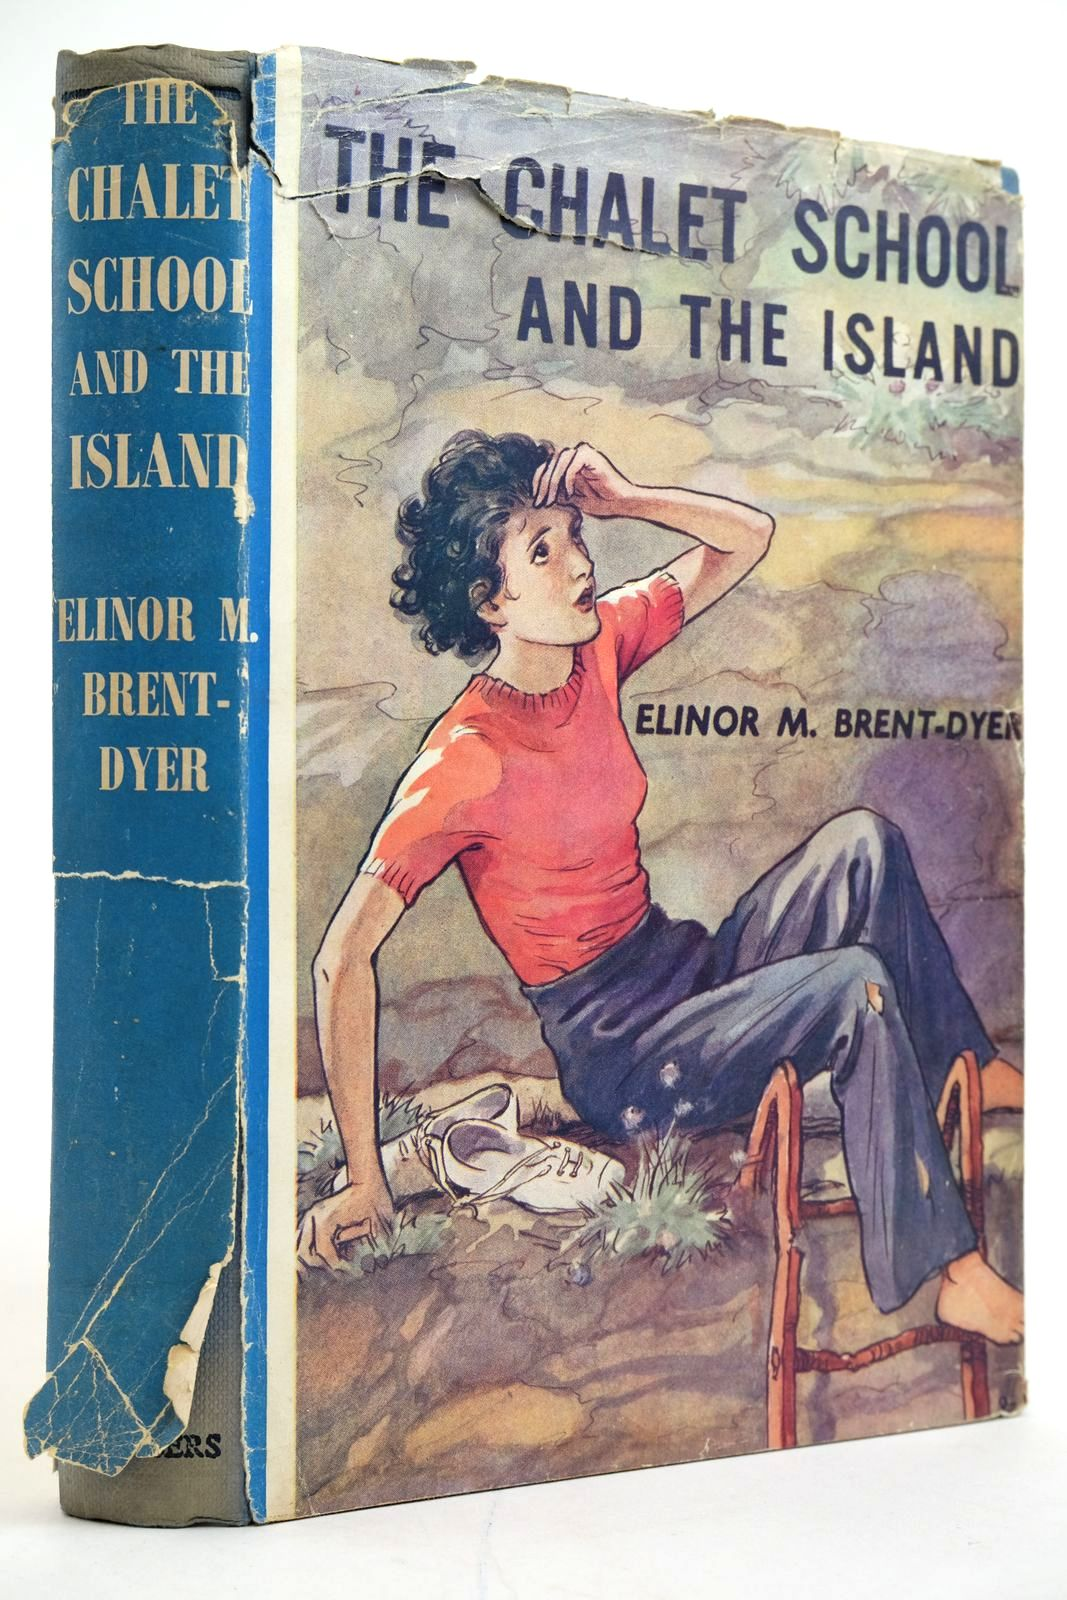 Photo of THE CHALET SCHOOL AND THE ISLAND written by Brent-Dyer, Elinor M. published by W. & R. Chambers Limited (STOCK CODE: 2135251)  for sale by Stella & Rose's Books